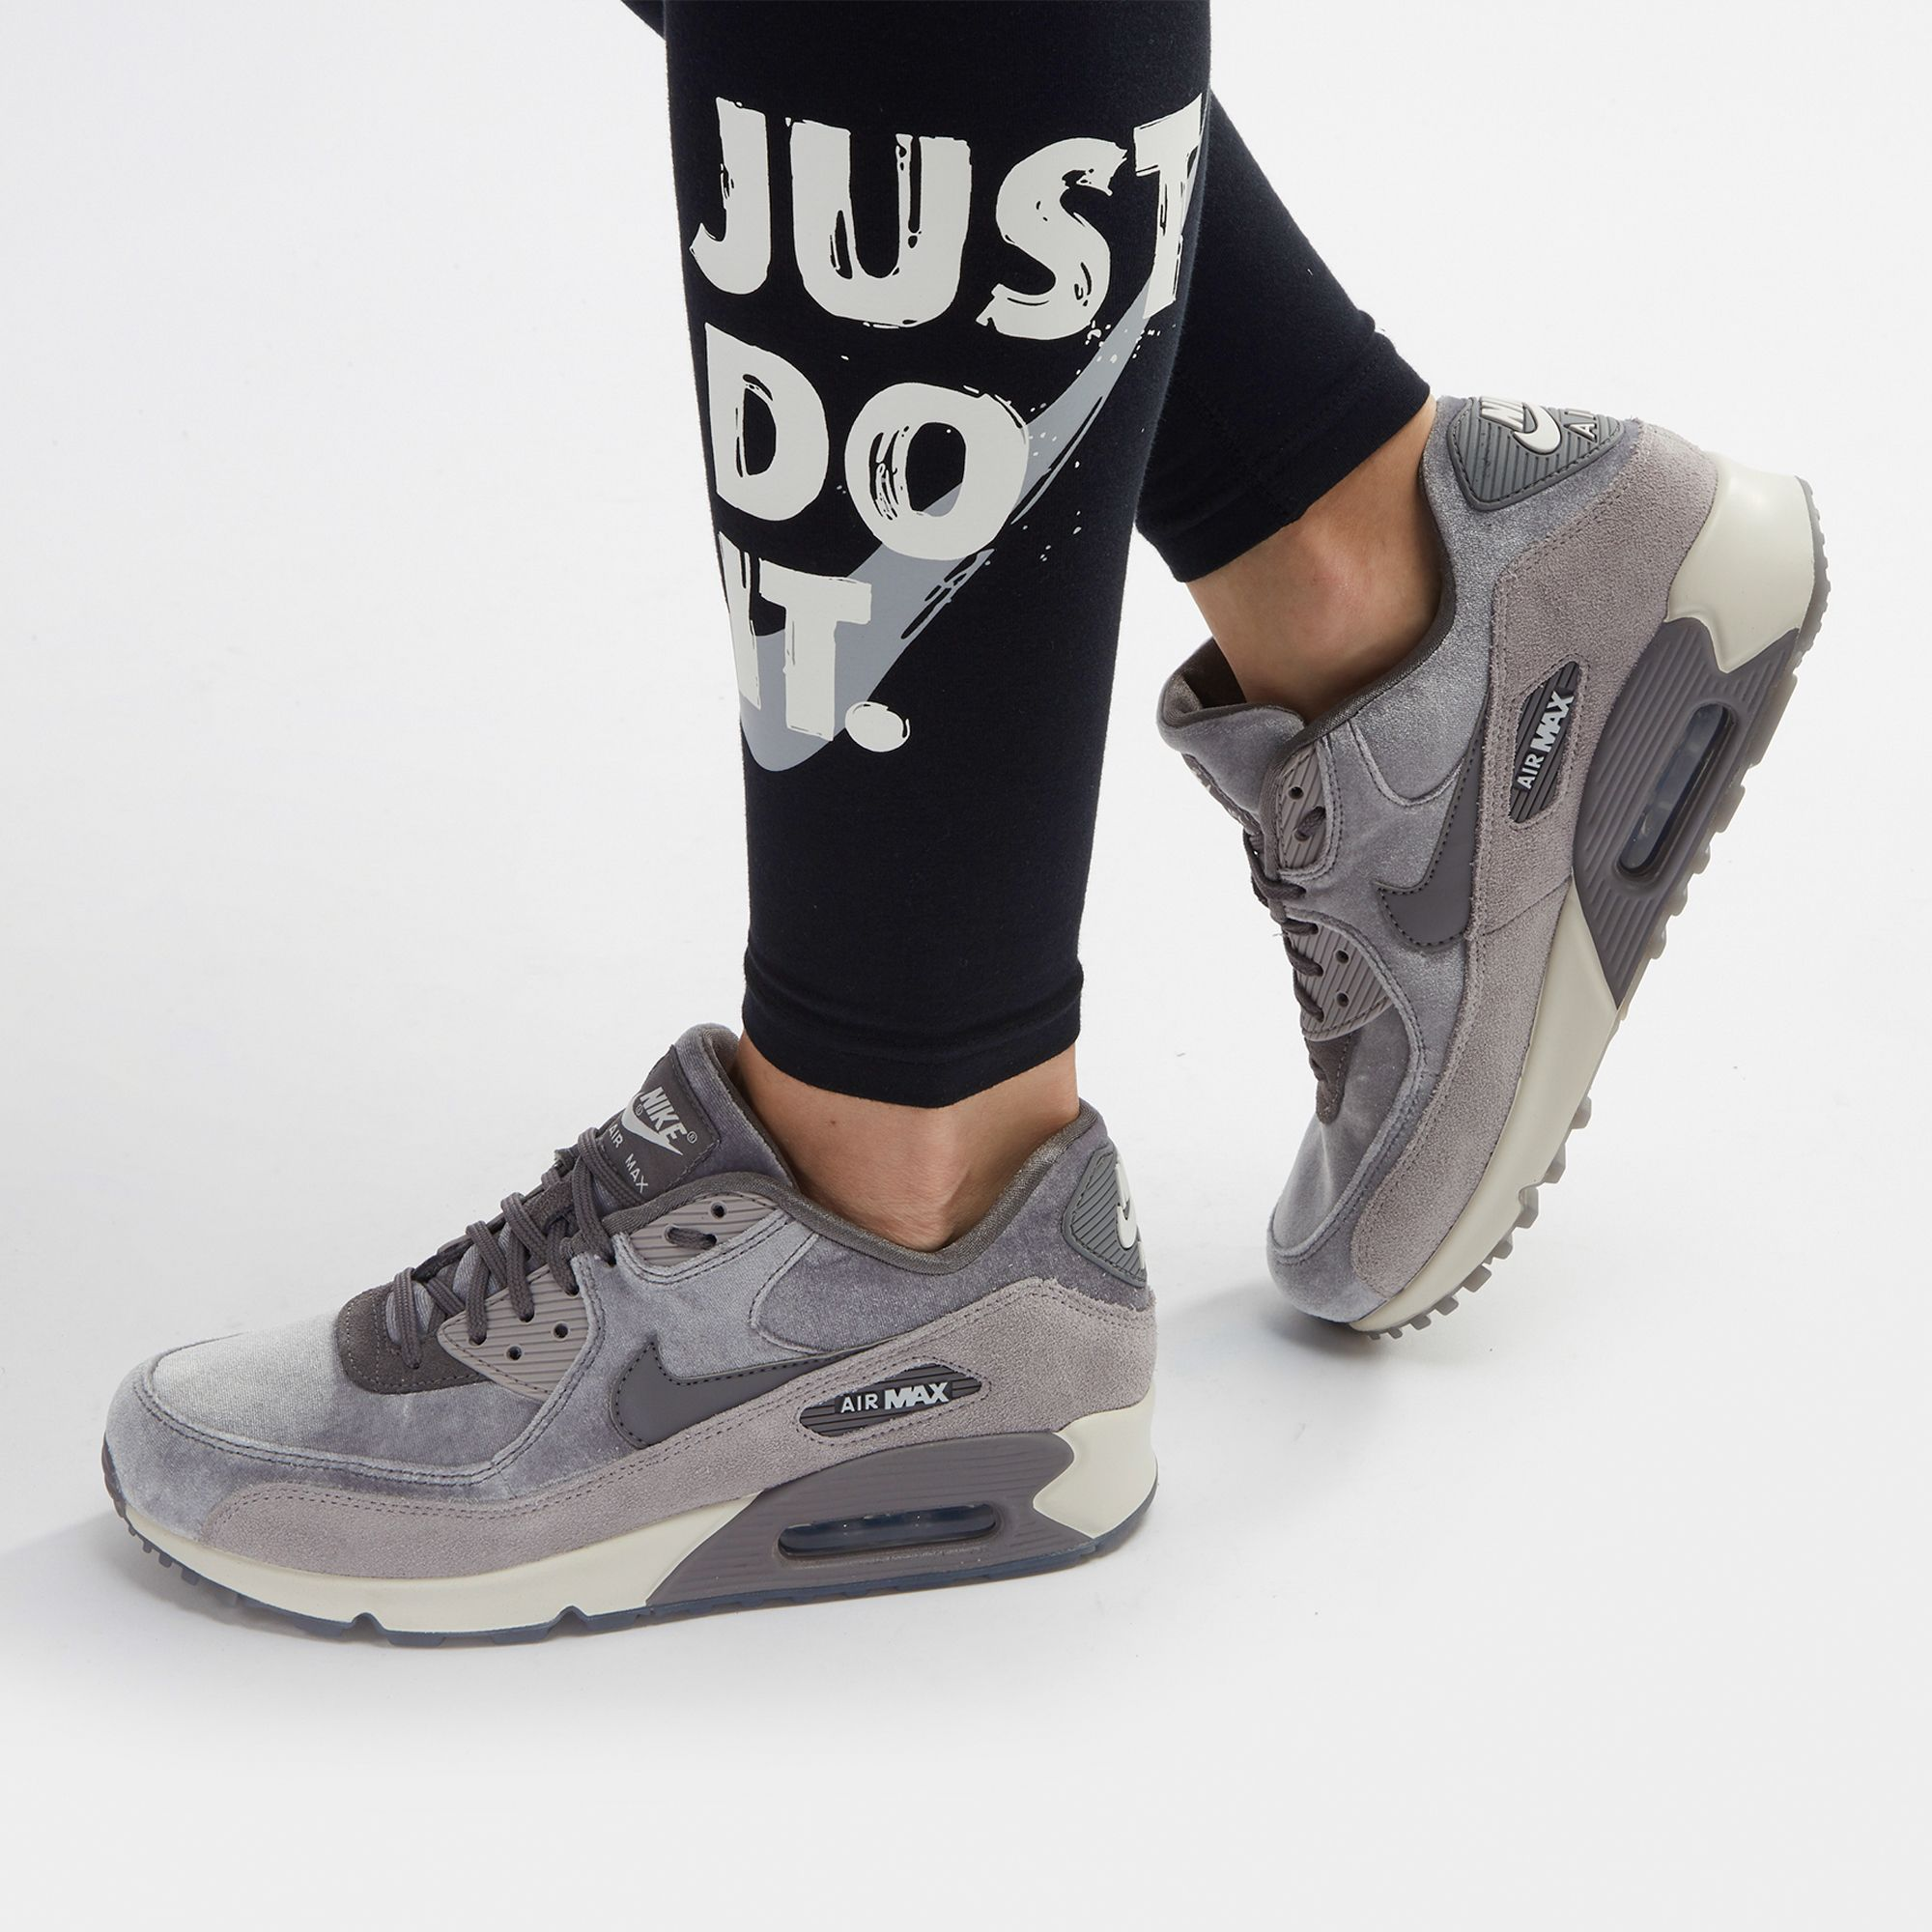 best service c140d a1d84 ... france low cost nike air max 90 lx velvet shoe 41b66 c9320 e0ad3 02d9c